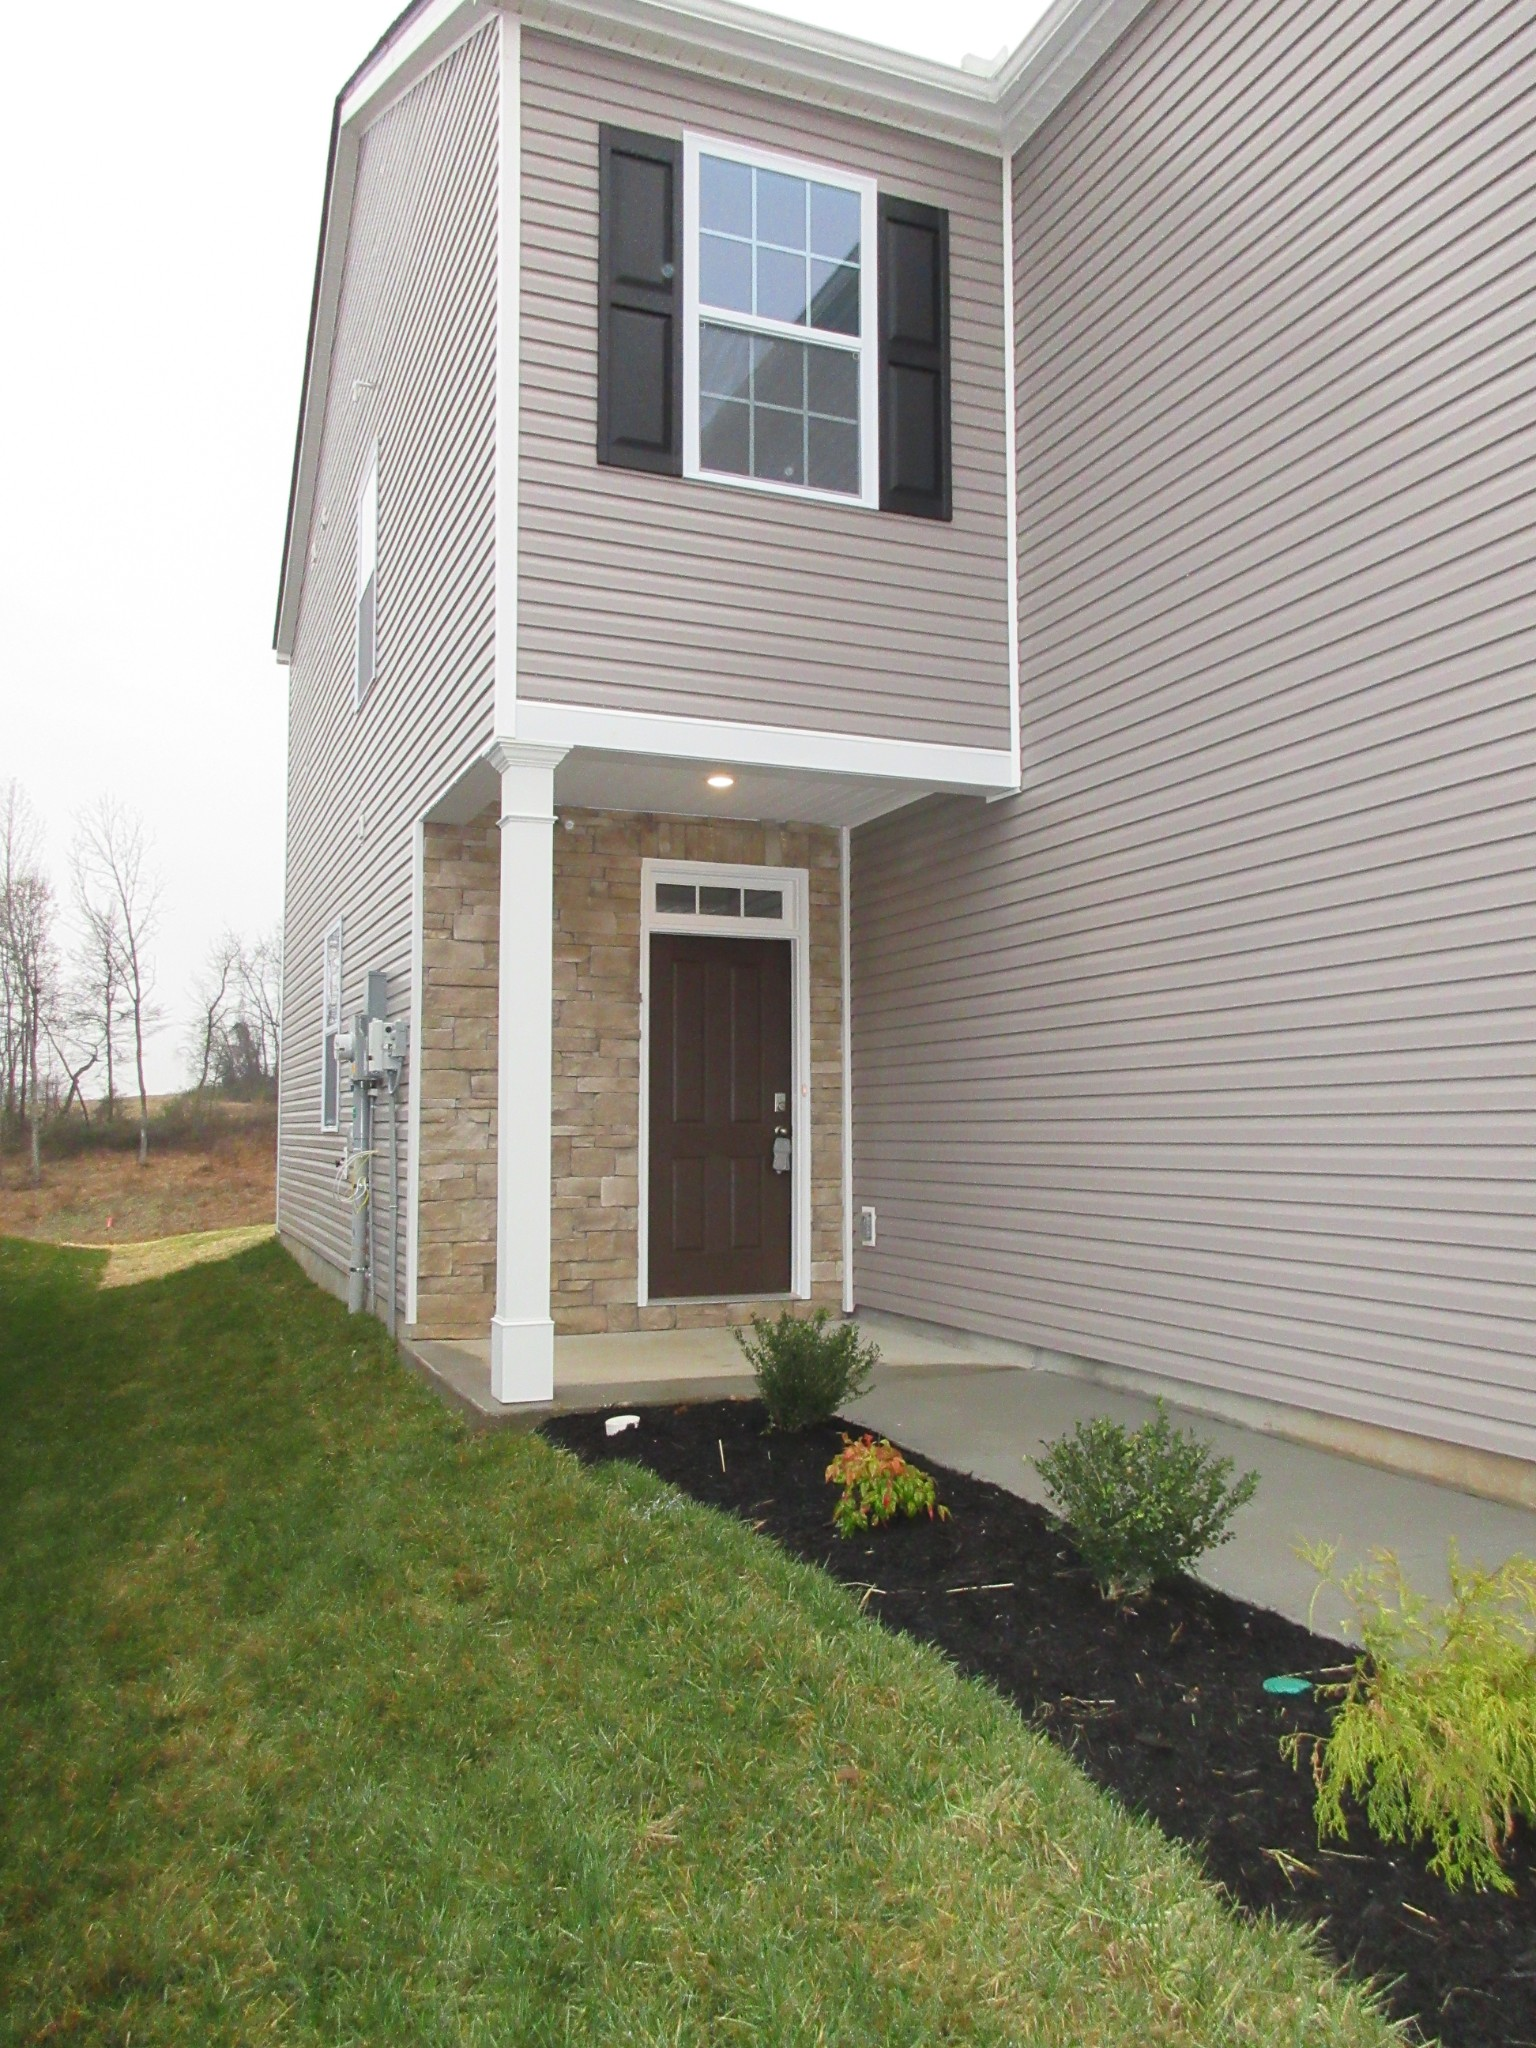 Beautiful Open concept home has, 4bd rooms 2.5 baths, 2 car garage; Granite counters tops in the kitchen; stainless steel appliances, great space for entertaining; Smart home capability, recessed lighting through out the home. Massive shower and Dbl vanities master bath.  Ample storage. Minutes  to I24: Easy commute to Nashville